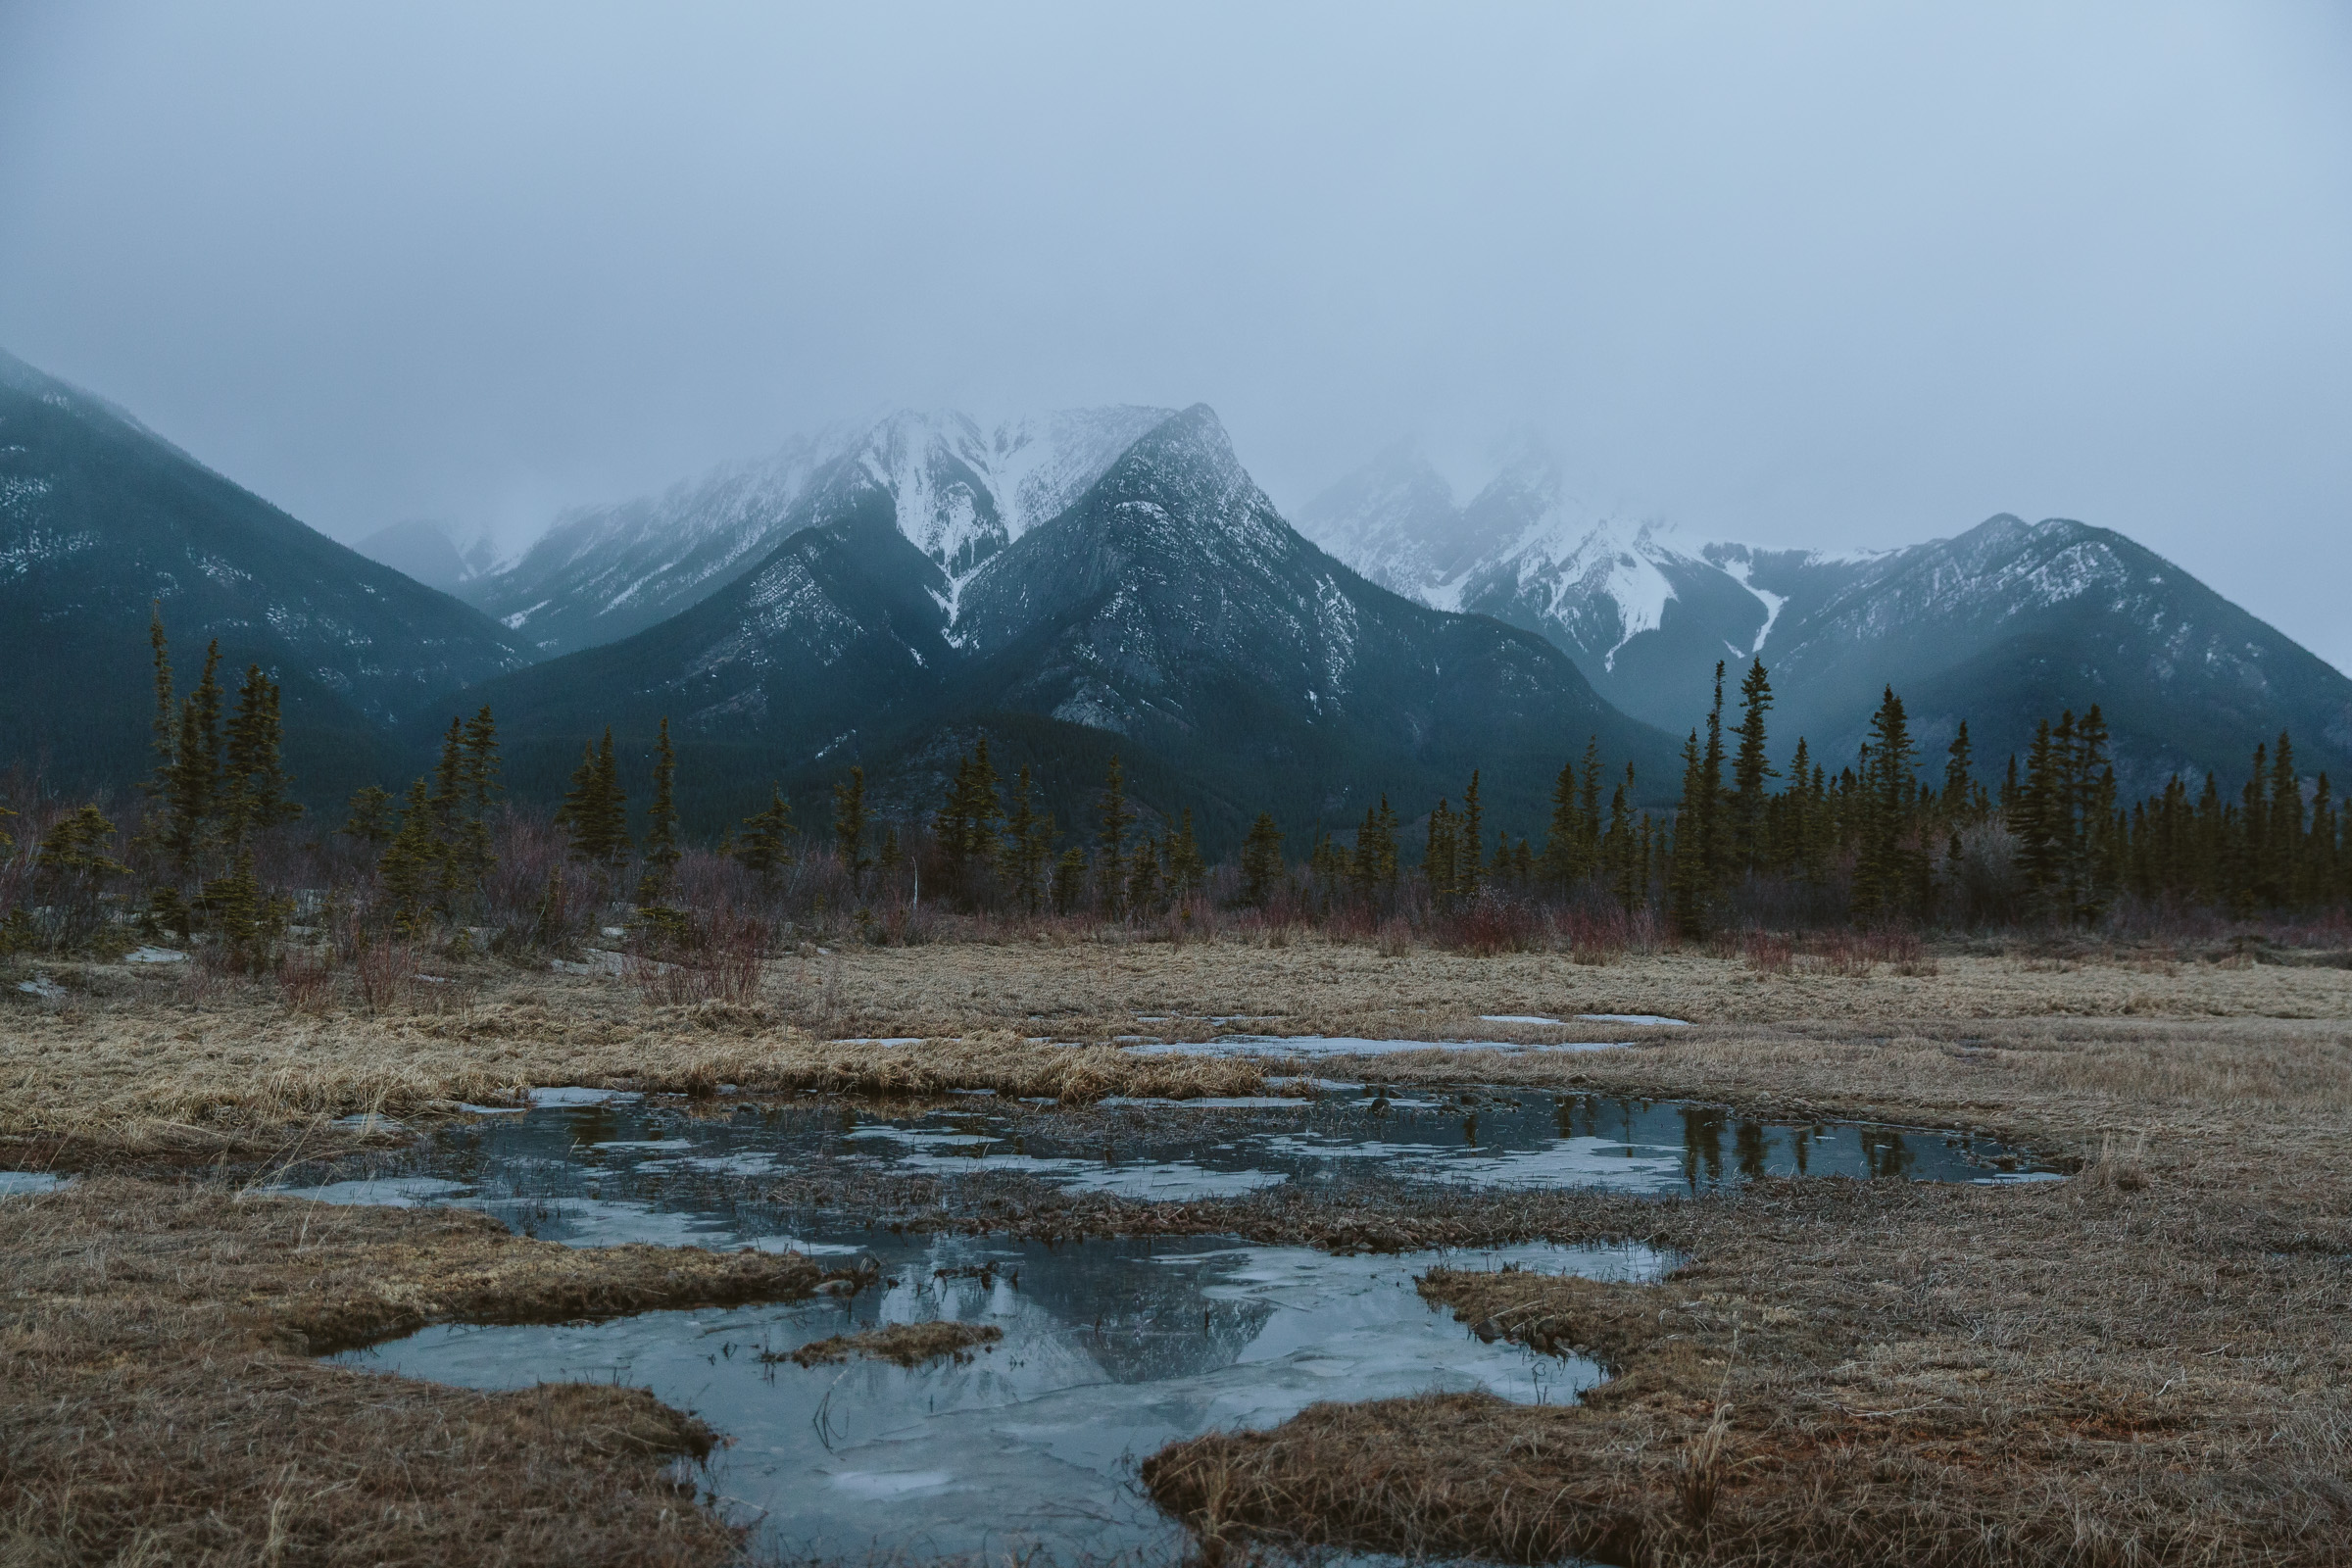 z-canada-alberta-lifestyle-photography-mikeseehagel-62